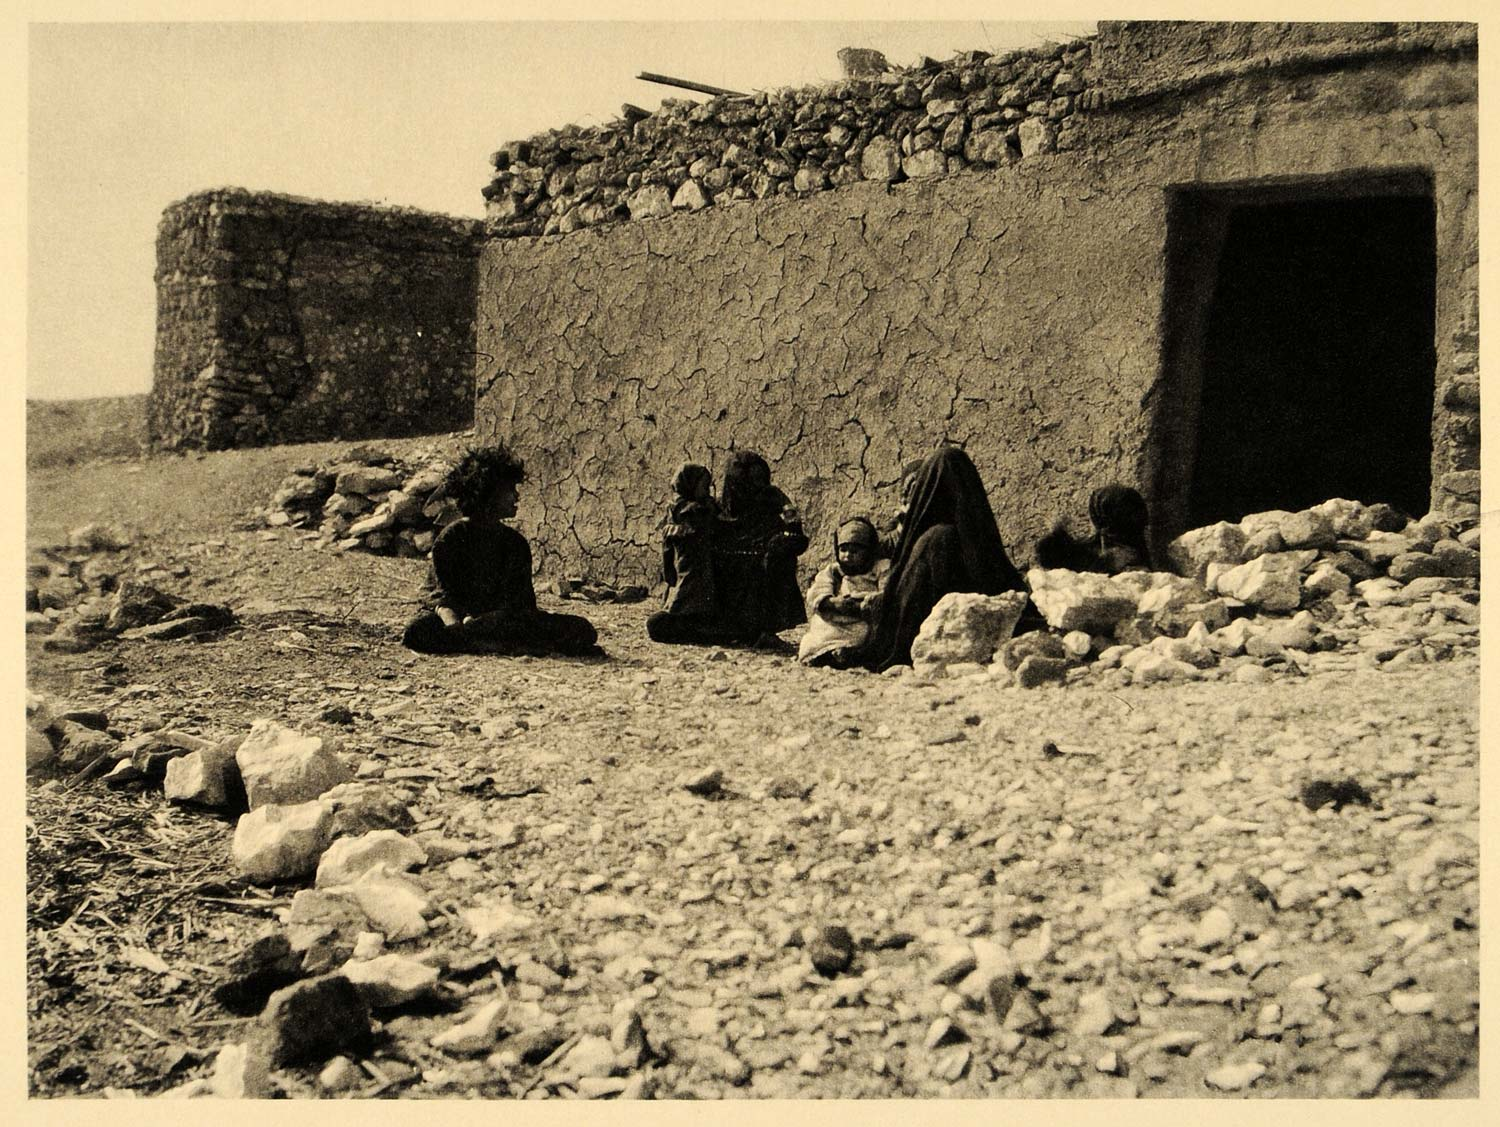 1929 Thebes Luxor Egypt Photogravure Women Dwelling - ORIGINAL PHOTOGRAVURE EG1